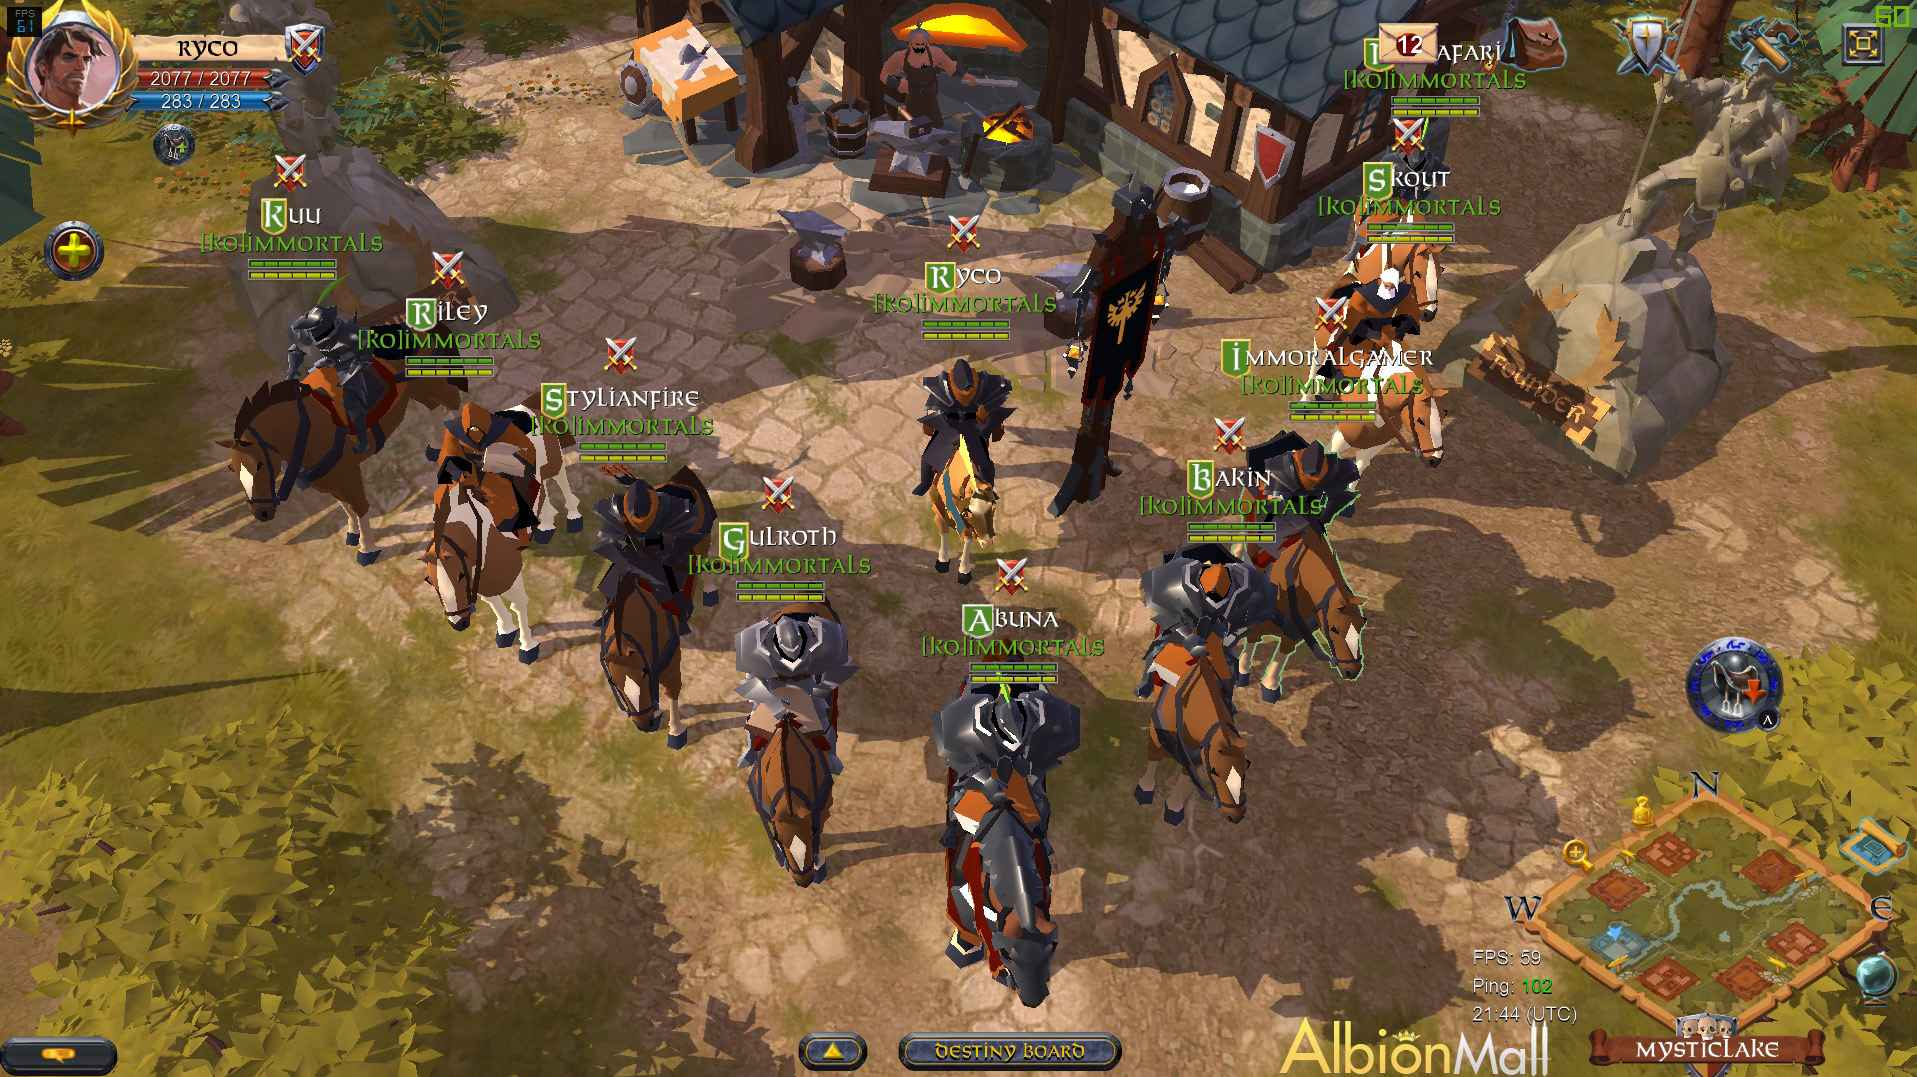 Abion Online is a sandbox open world pvp